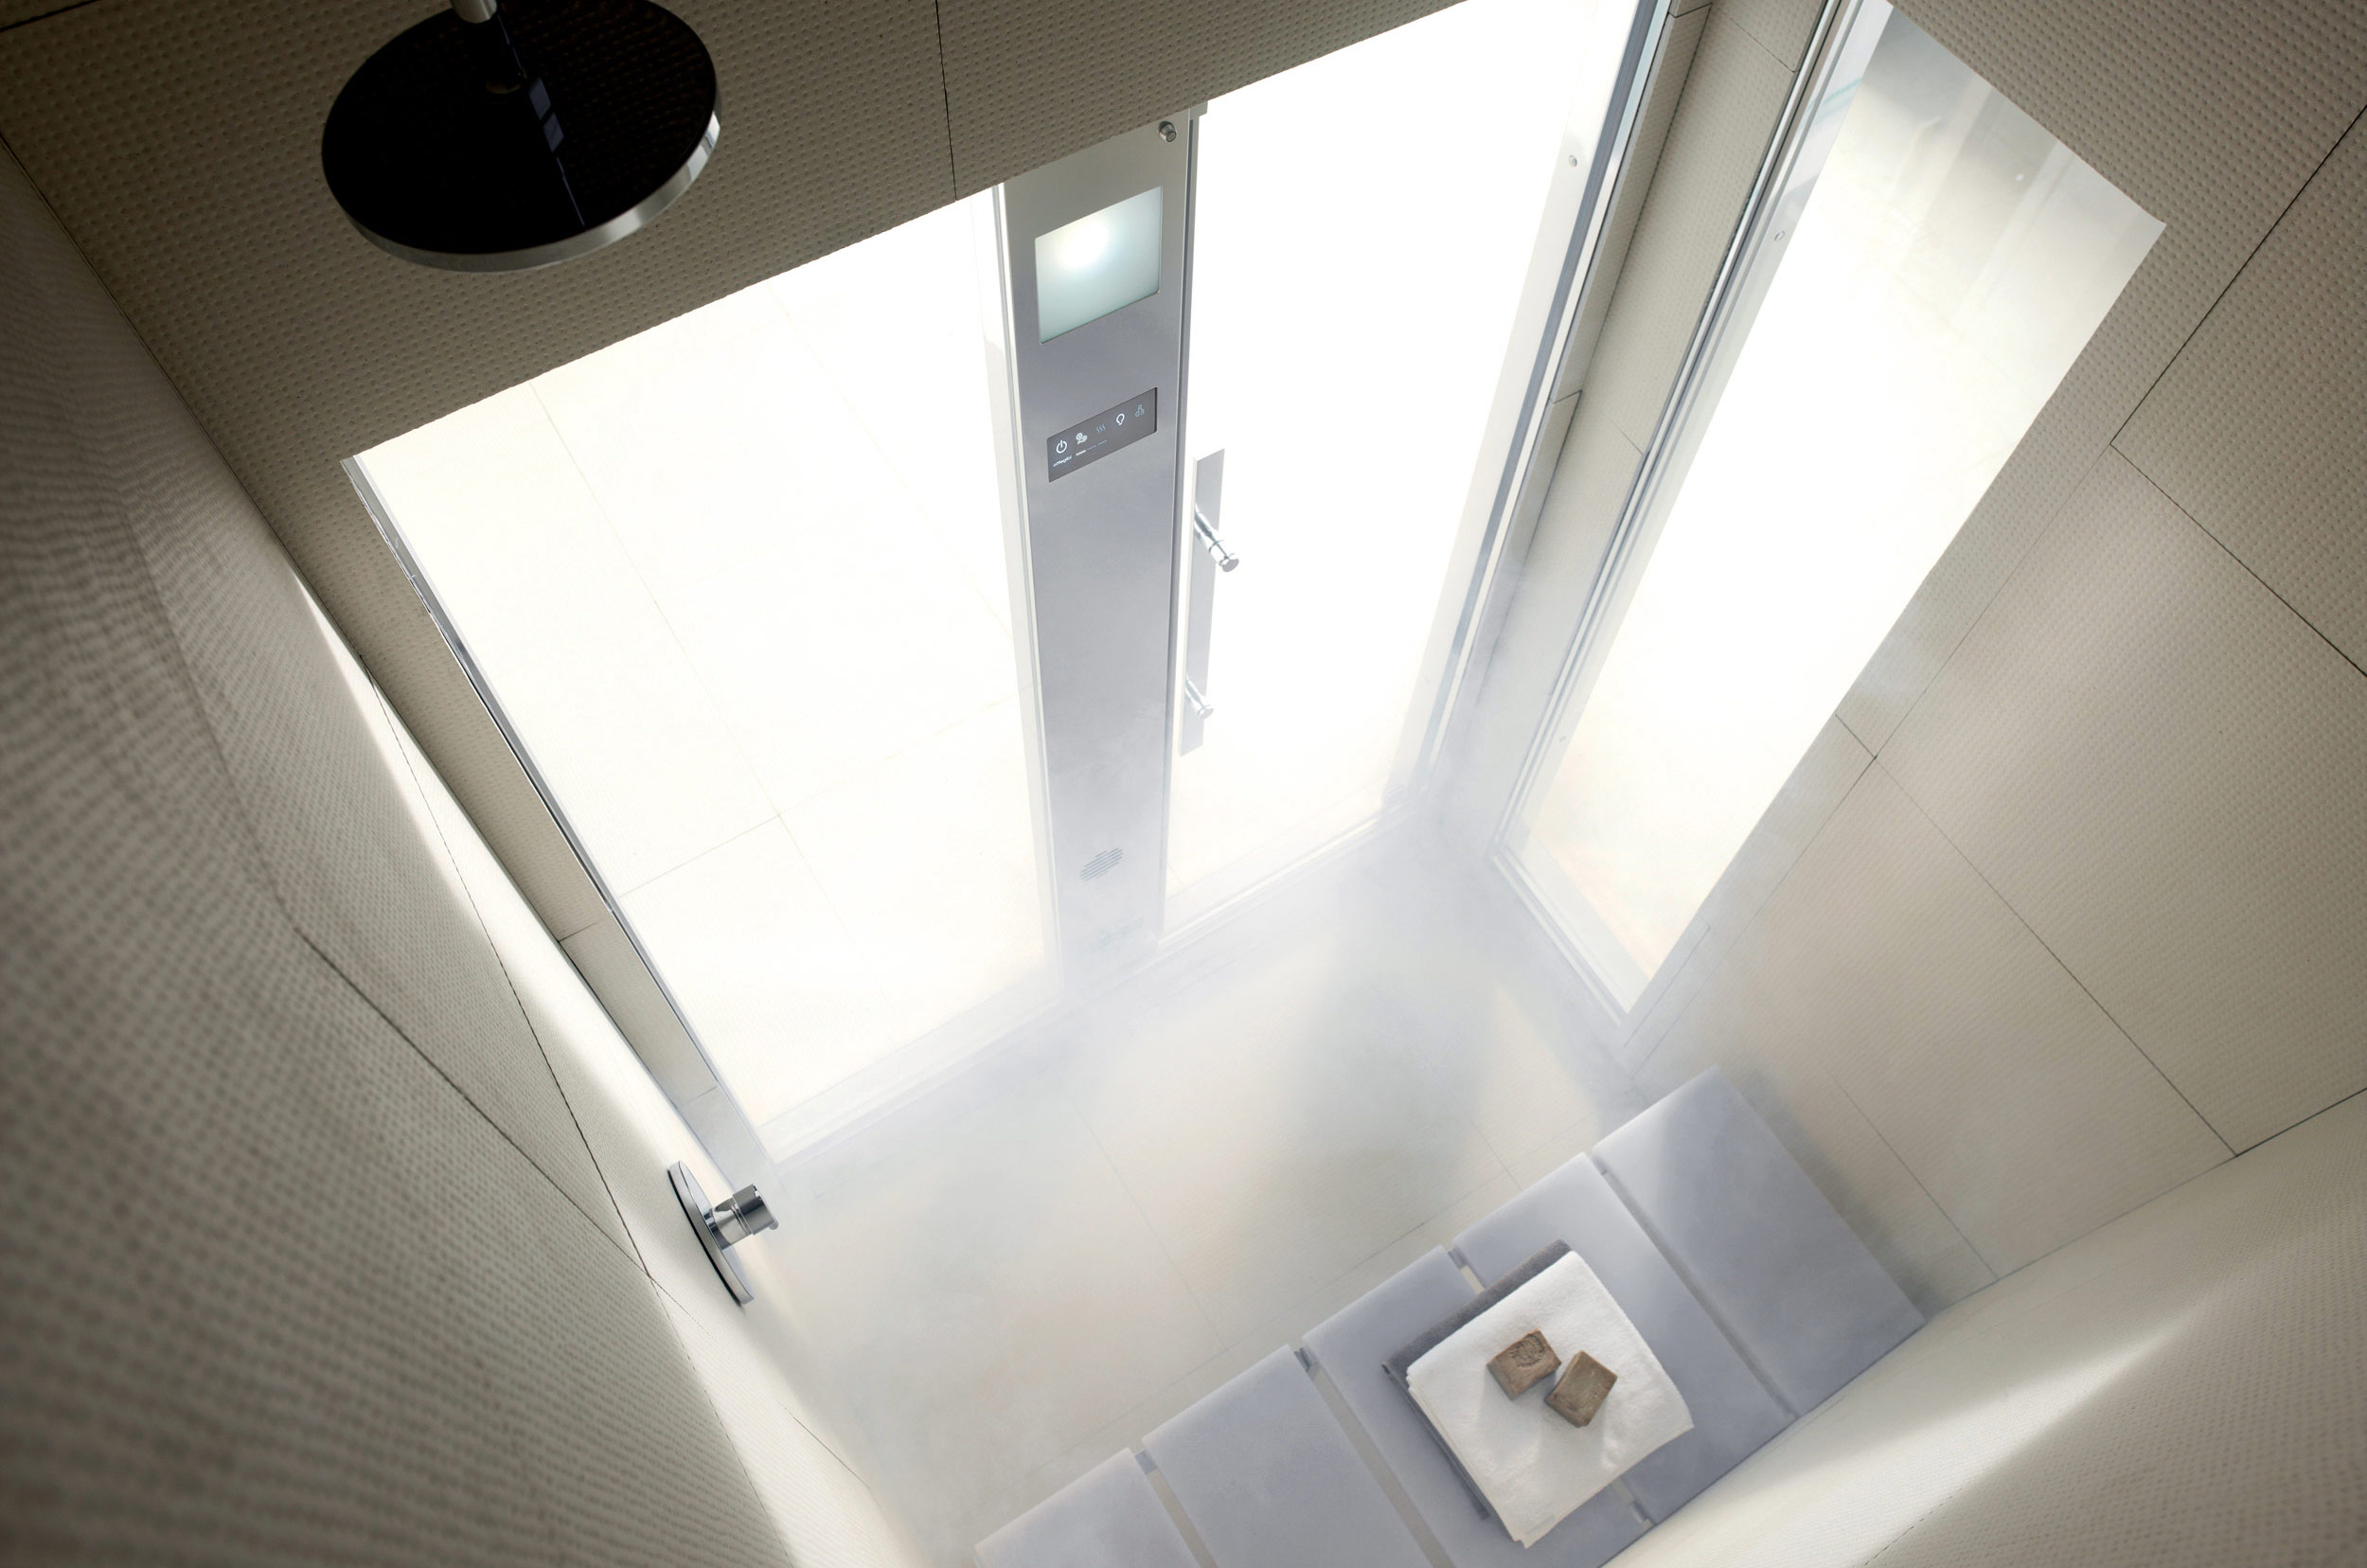 23_OmniasteamTouch-Photo2-326-effegibi_rit